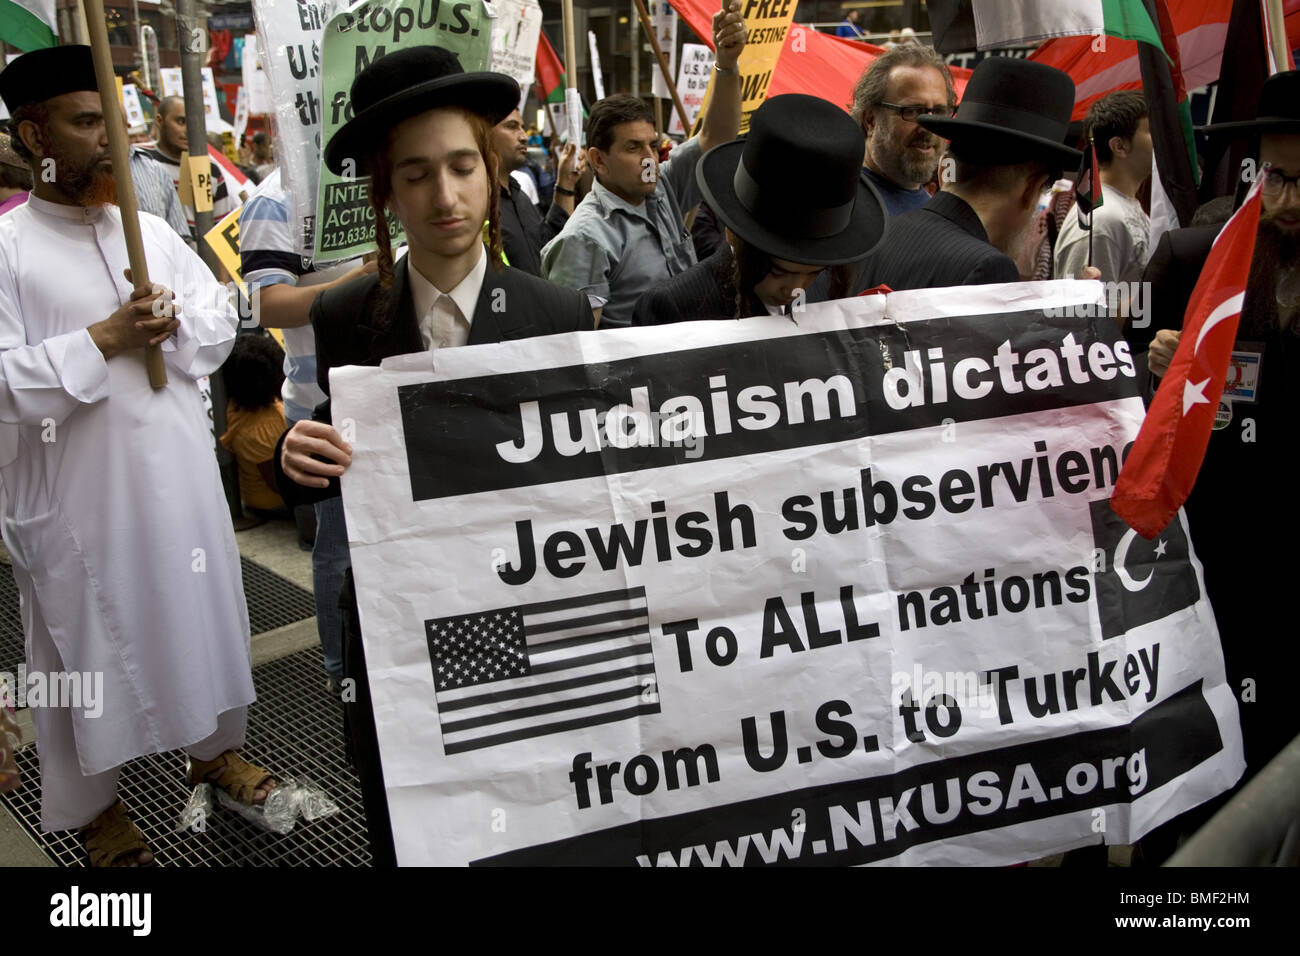 Anti-Zionist Orthodox Jews with Palestinians and others Protest Israel's brutal attack on the International Gaza Stock Photo